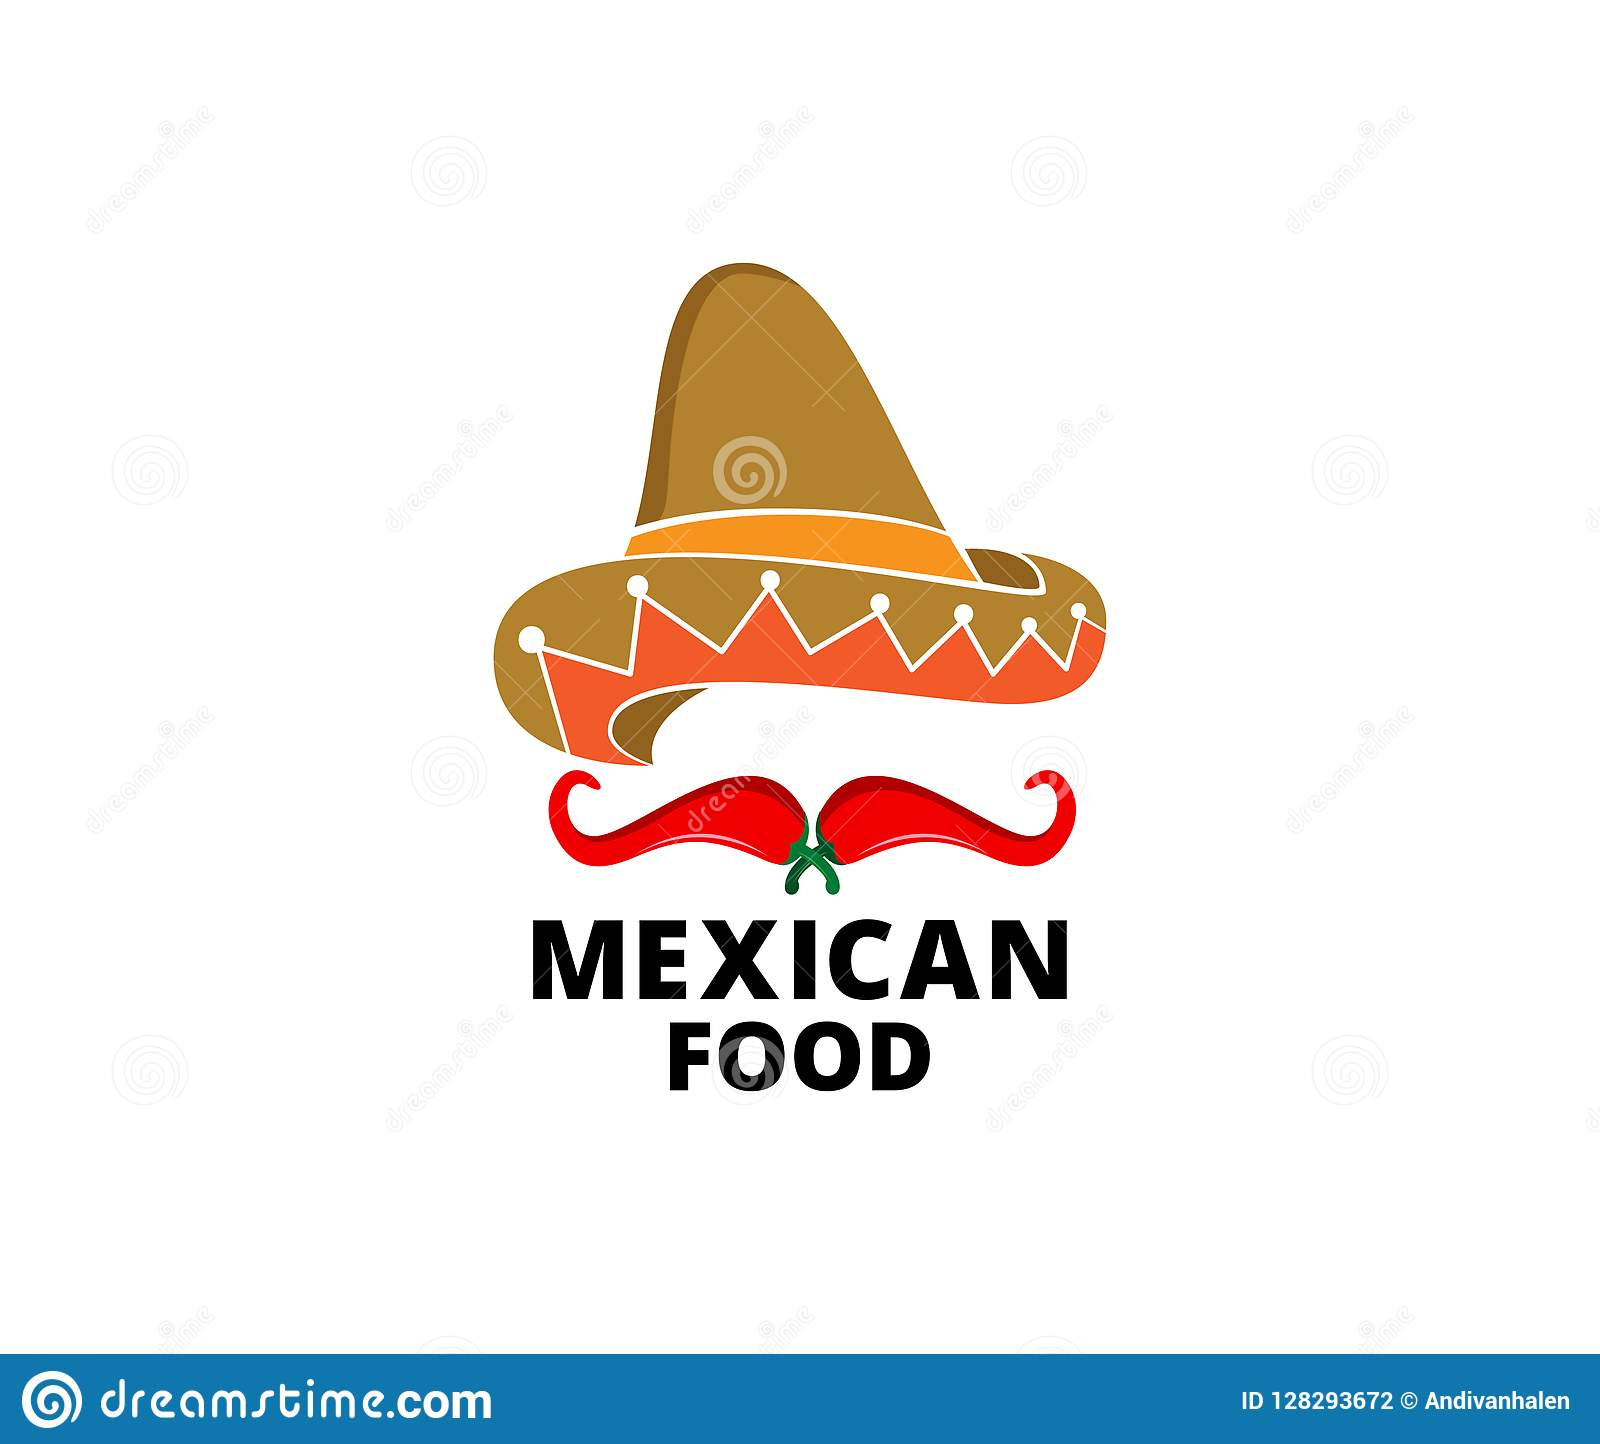 chili hot and spicy food vector logo design inspiration for mexican cuisine  brand 1cc141d64e6